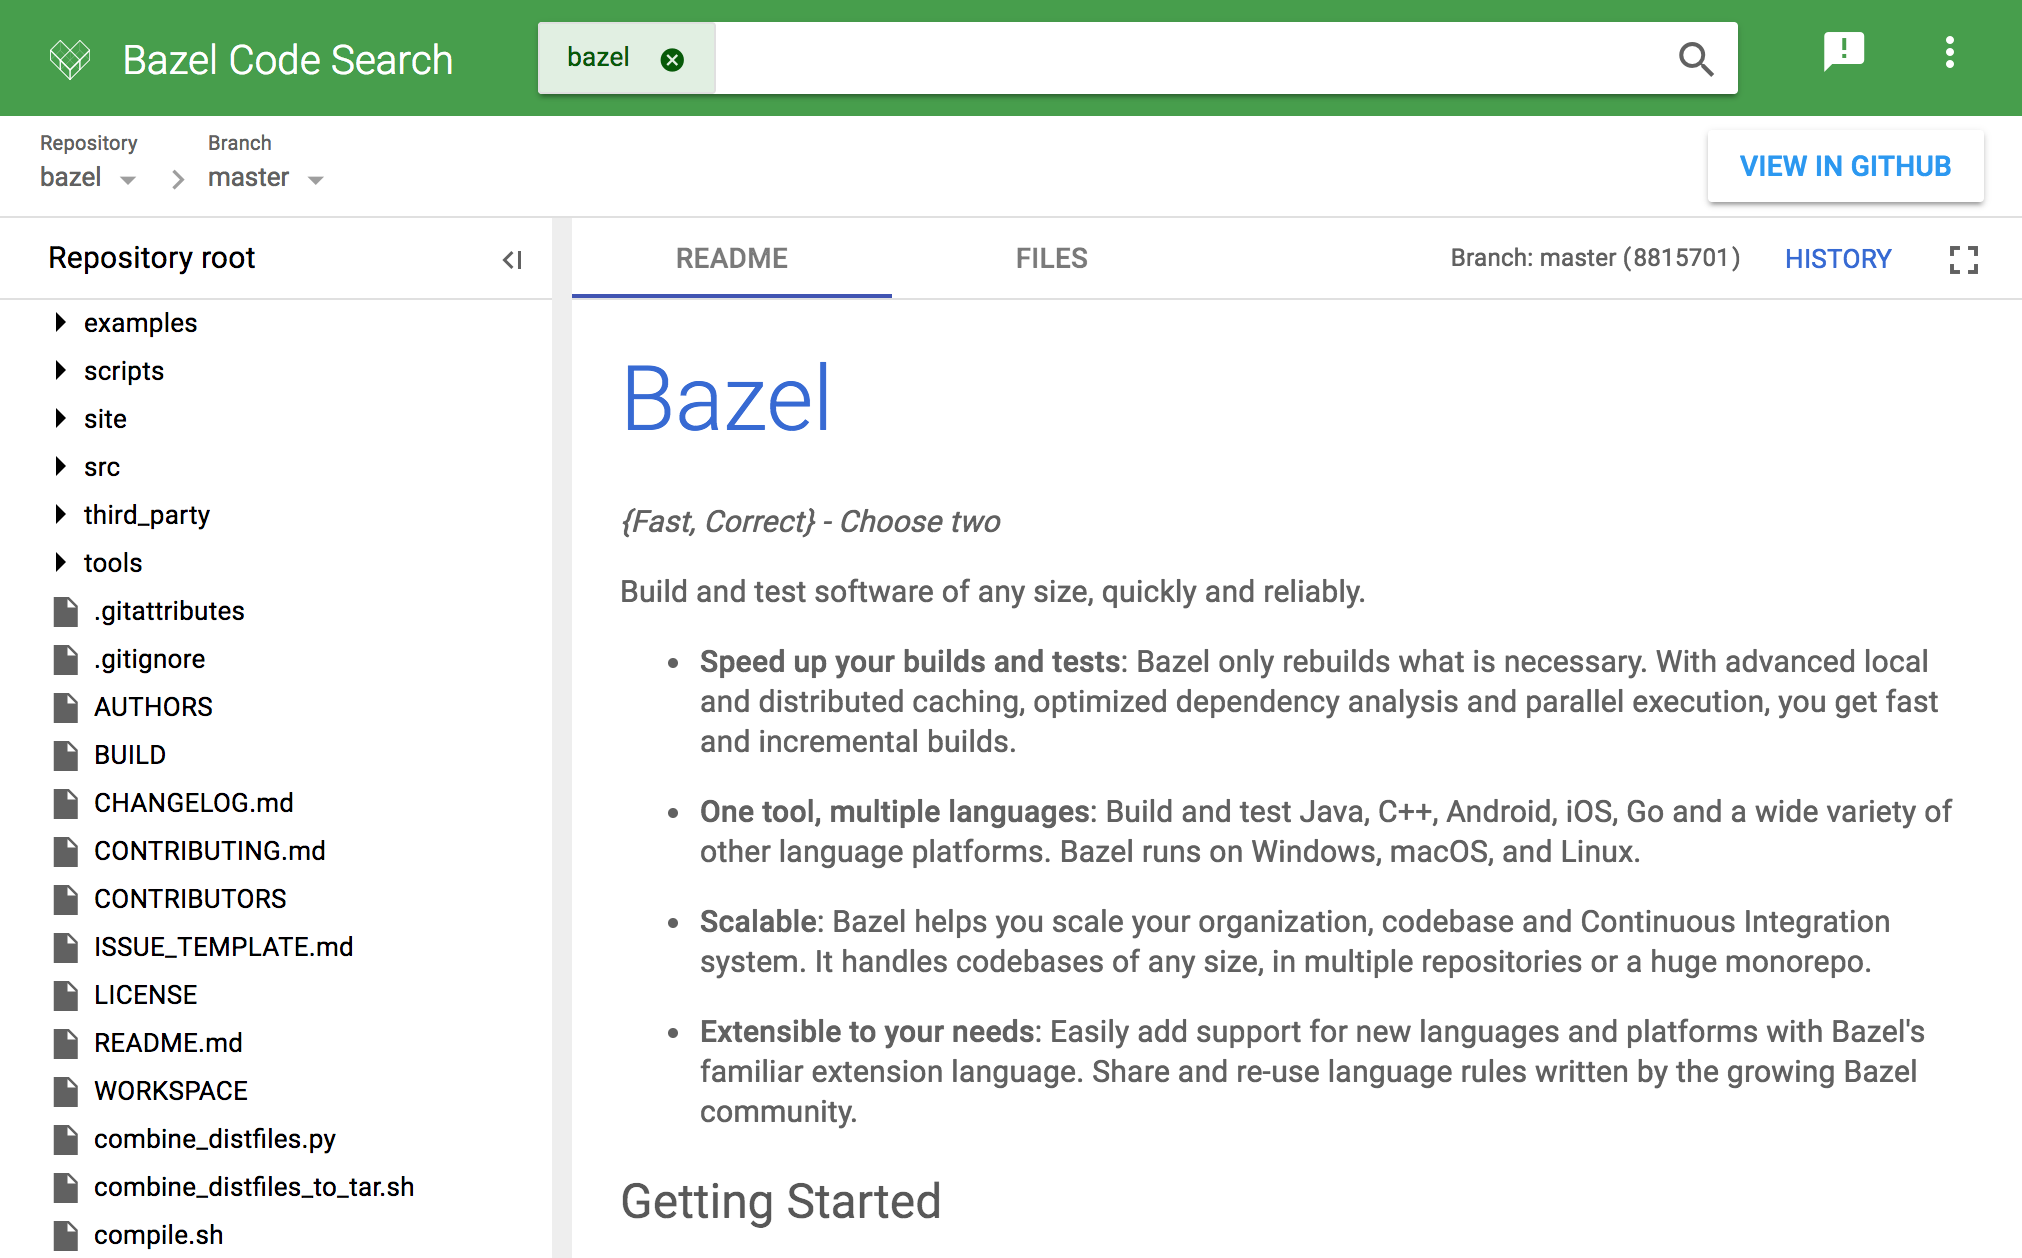 Repository view on Bazel Code Search